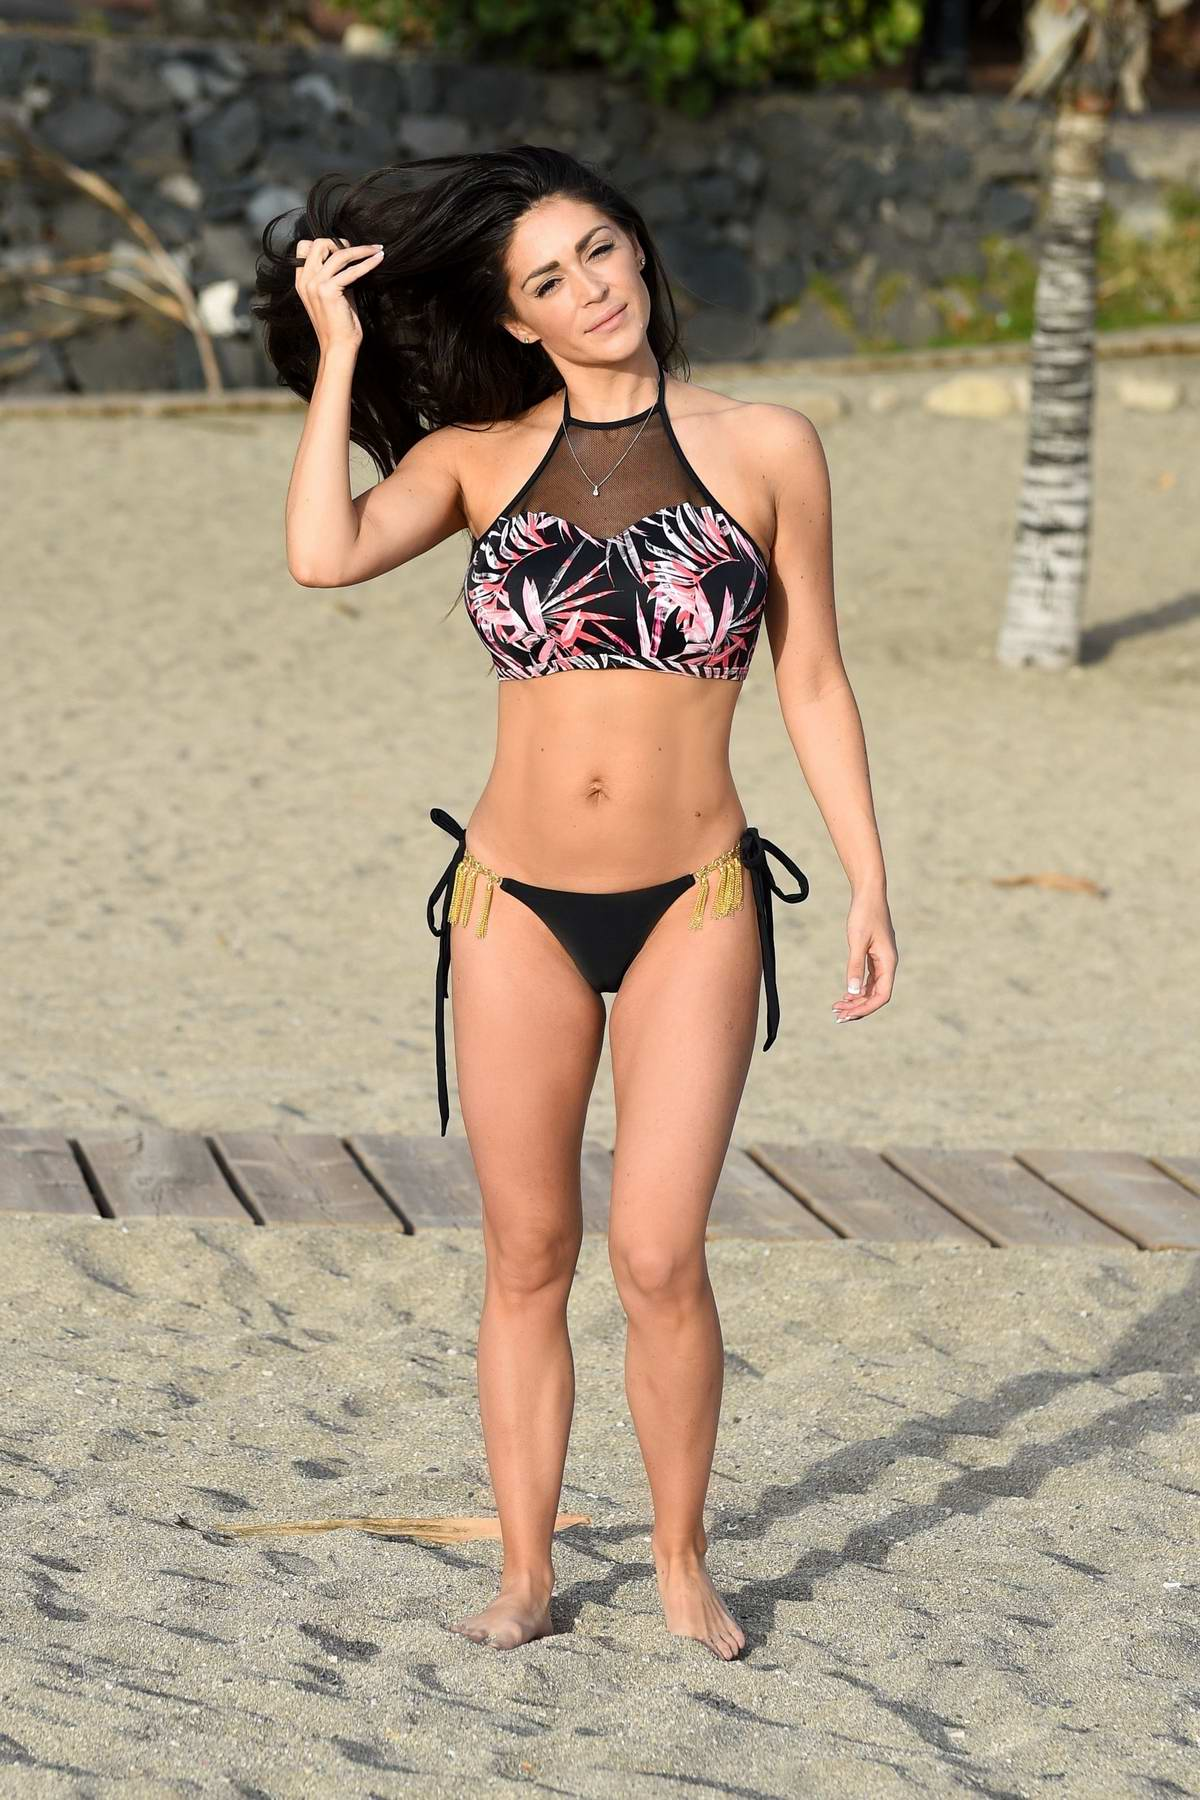 Casey Batchelor spotted in a bikini while filming for her fitness app 'Yoga Blitz' in Tenerife, Spain